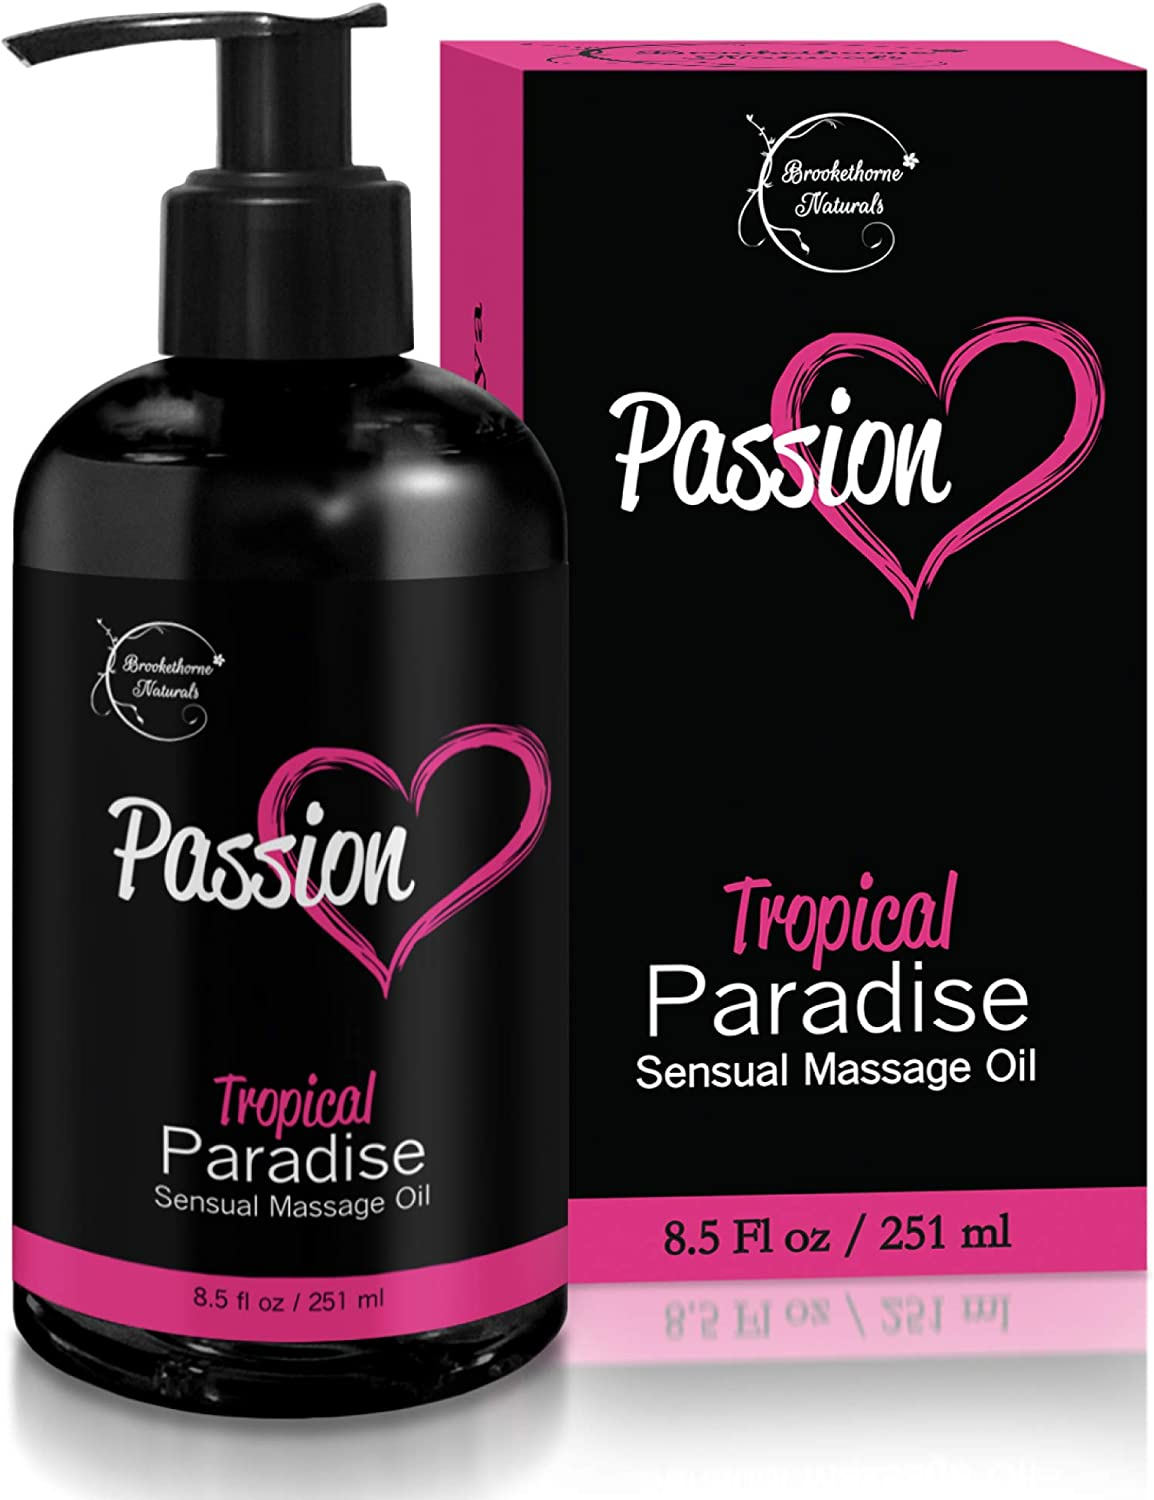 Passion Sensual Massage Oil for Intimate Moments & Enhanced Stimulation. All Natural, Tropical Paradise Scent with Almond & Jojoba Oil. Ideal for Full Body & Muscle Massage – for Women & Men - 8.5oz